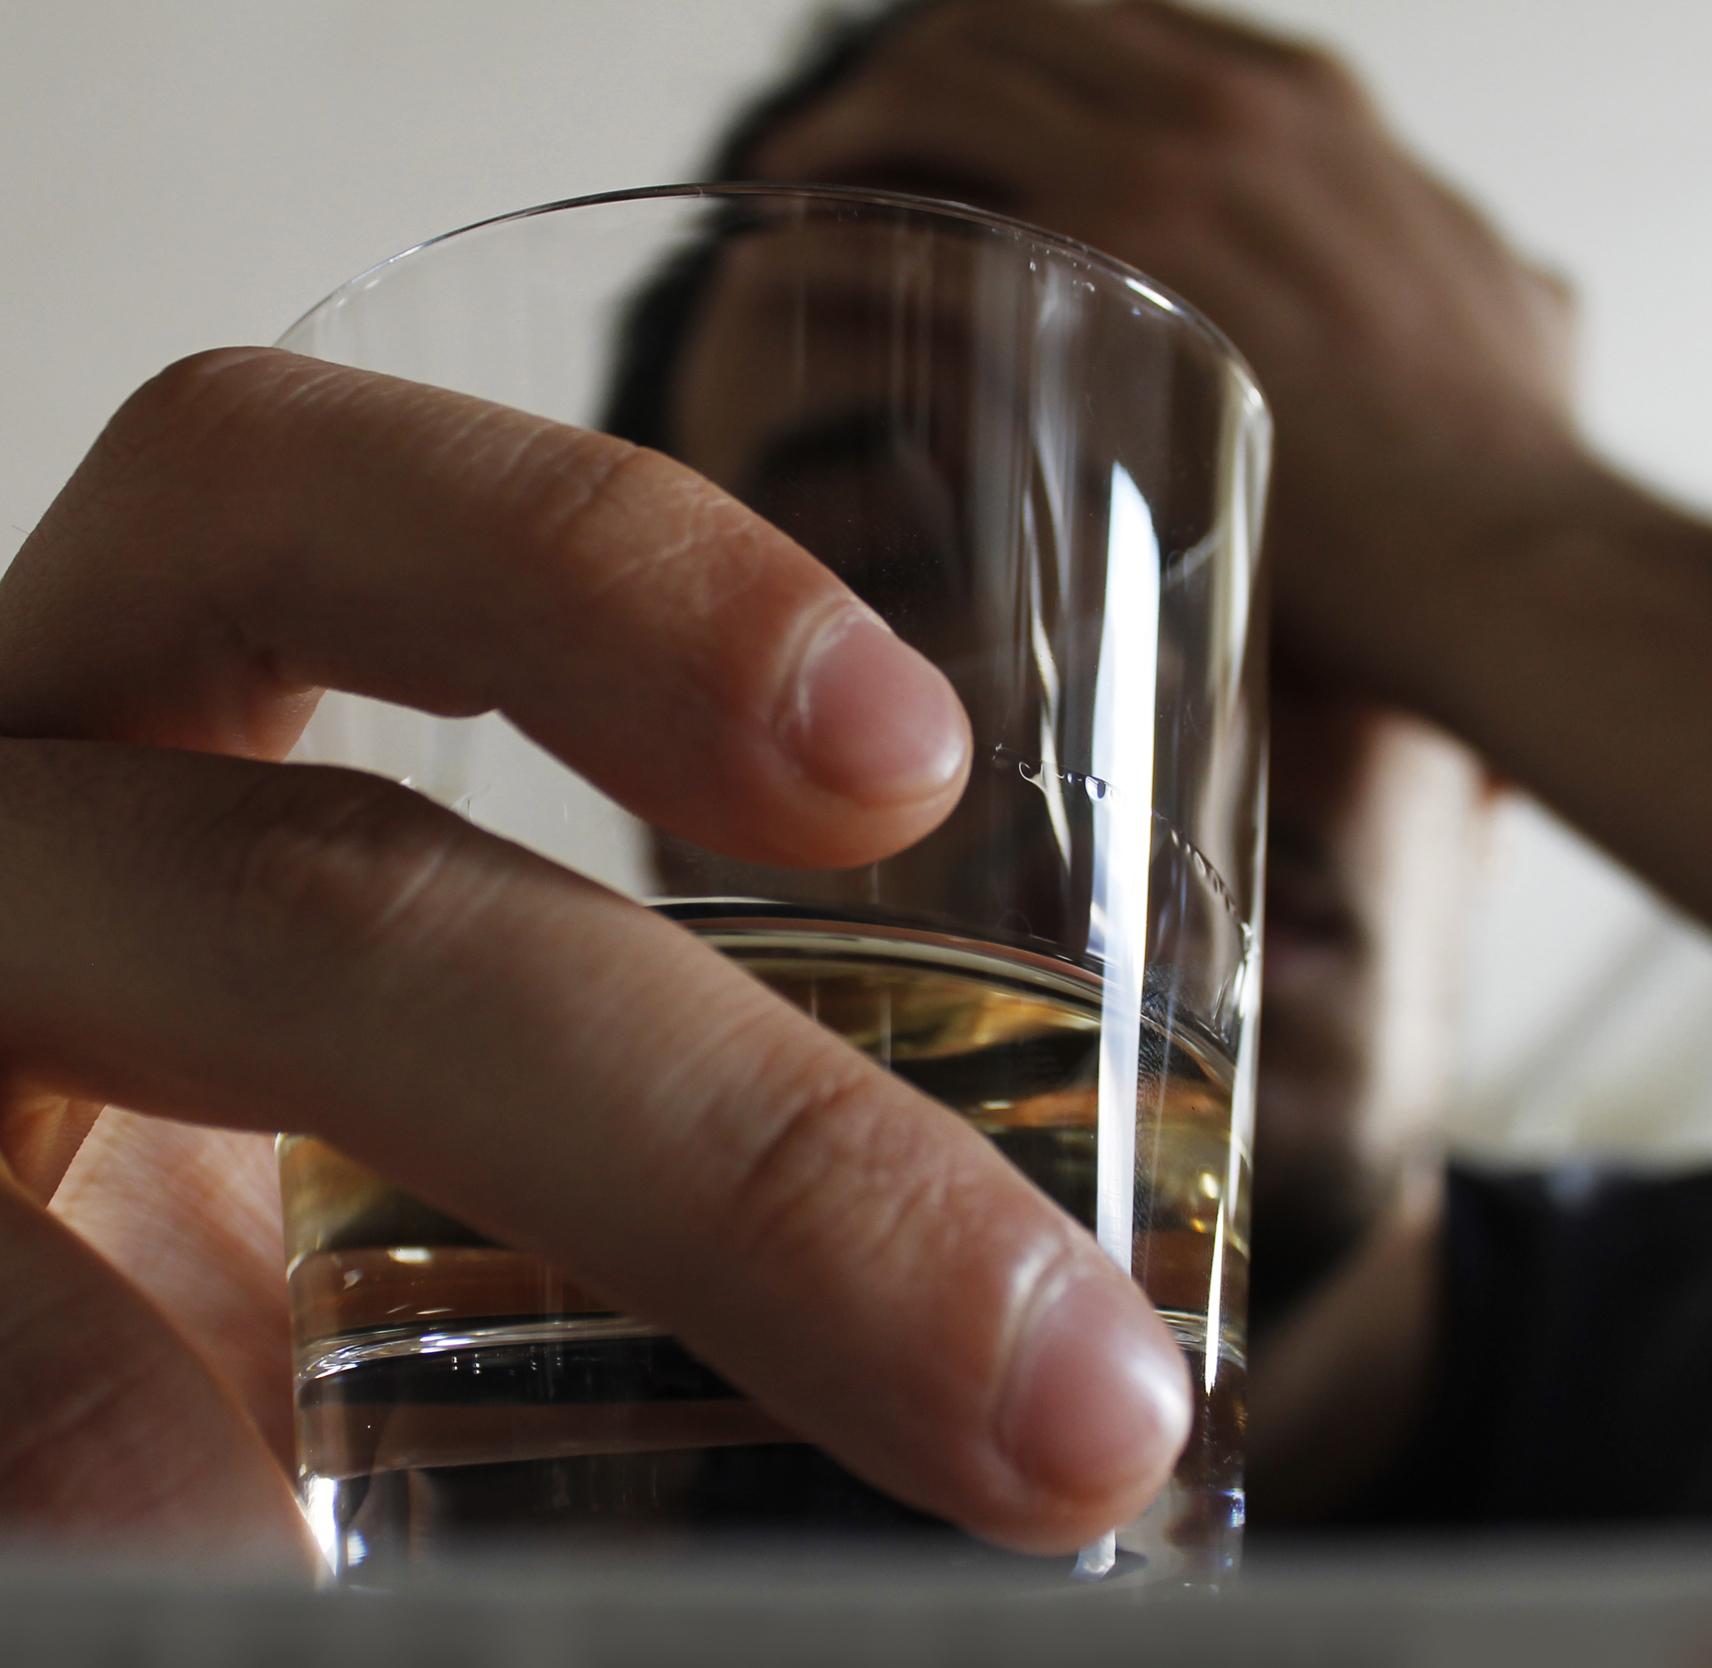 Alcohol-induced brain damage continues after alcohol is stopped